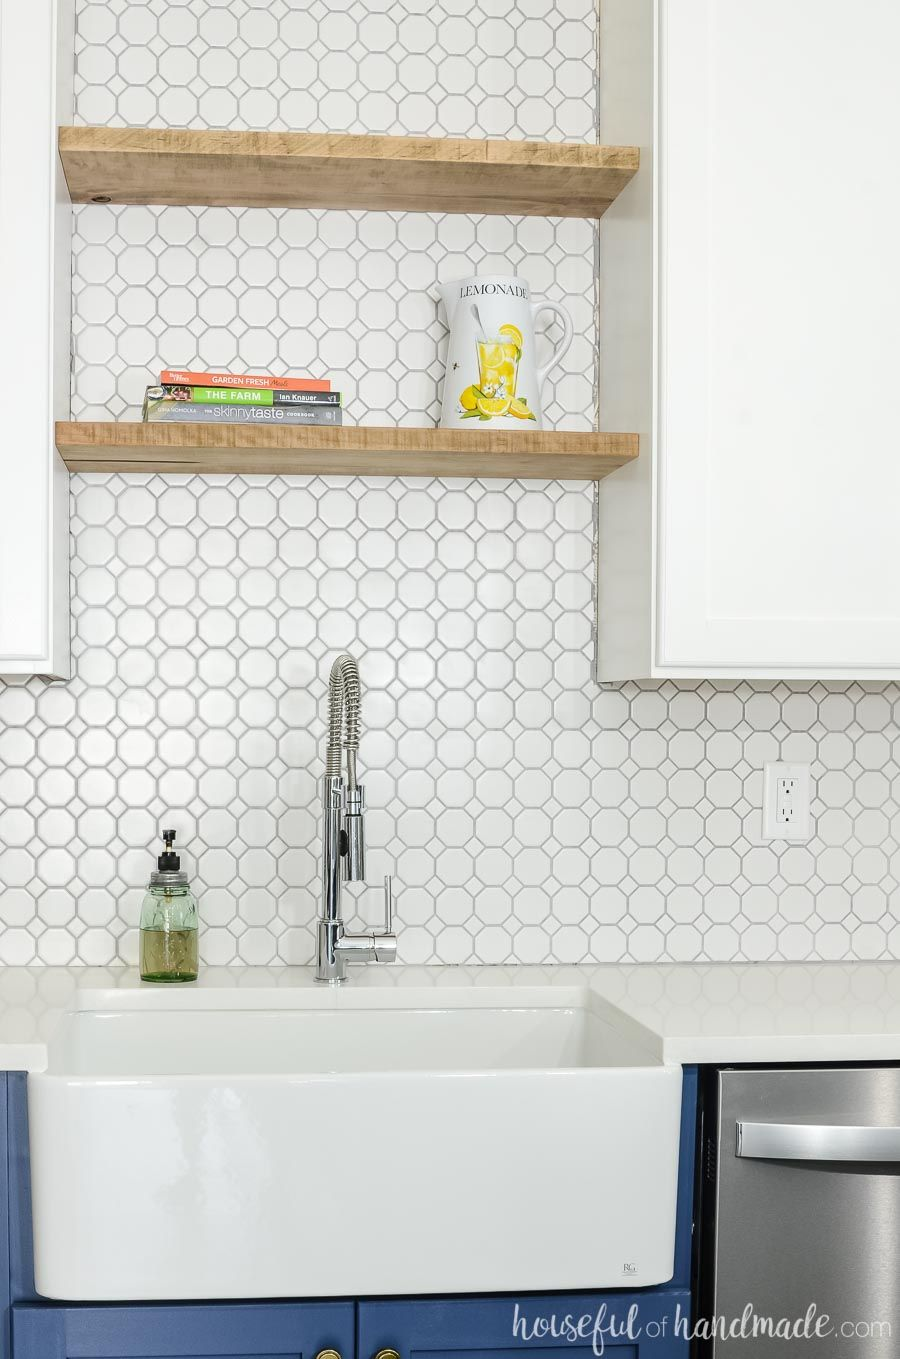 budget farmhouse kitchen remodel reveal almost laundry room floating shelves above sink thick maple boards were turned into the white octagon tile perfect backsplash fill space